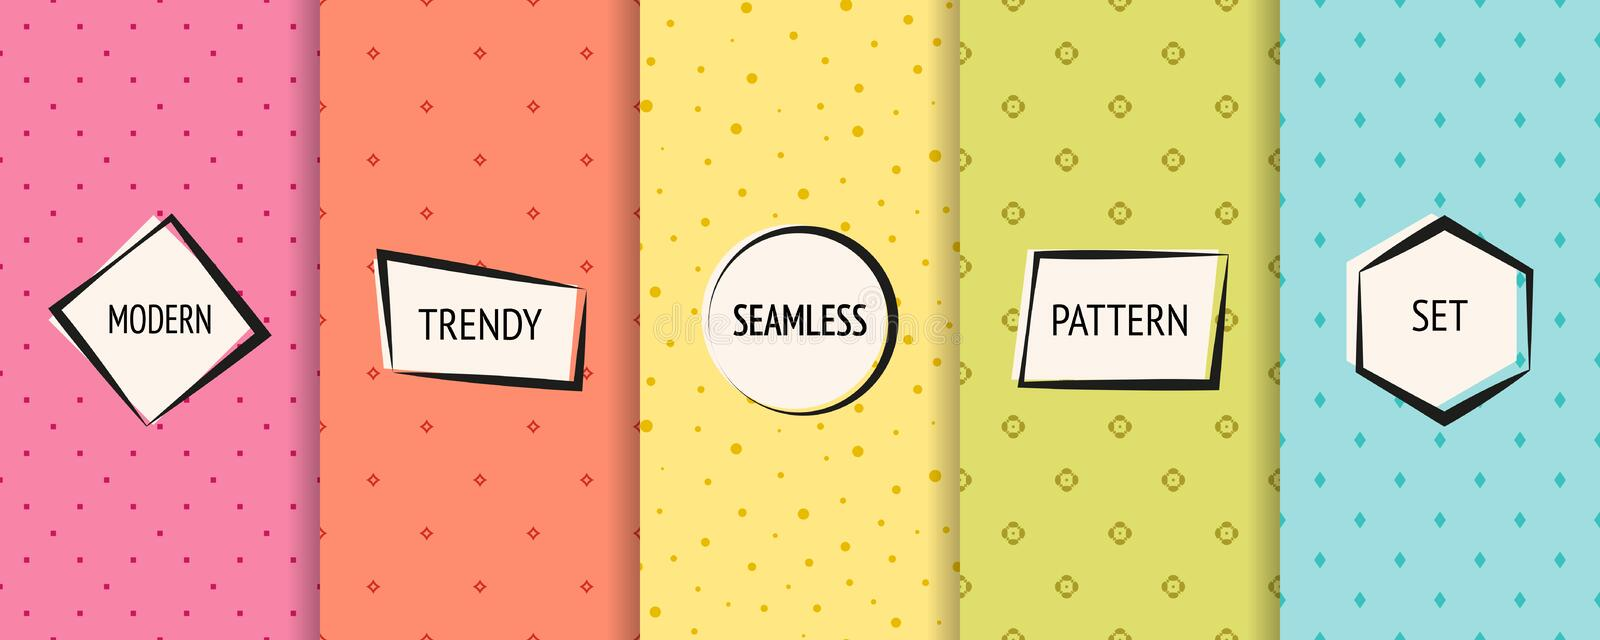 Minimalist pattern collection. Colorful geometric seamless backgrounds royalty free illustration